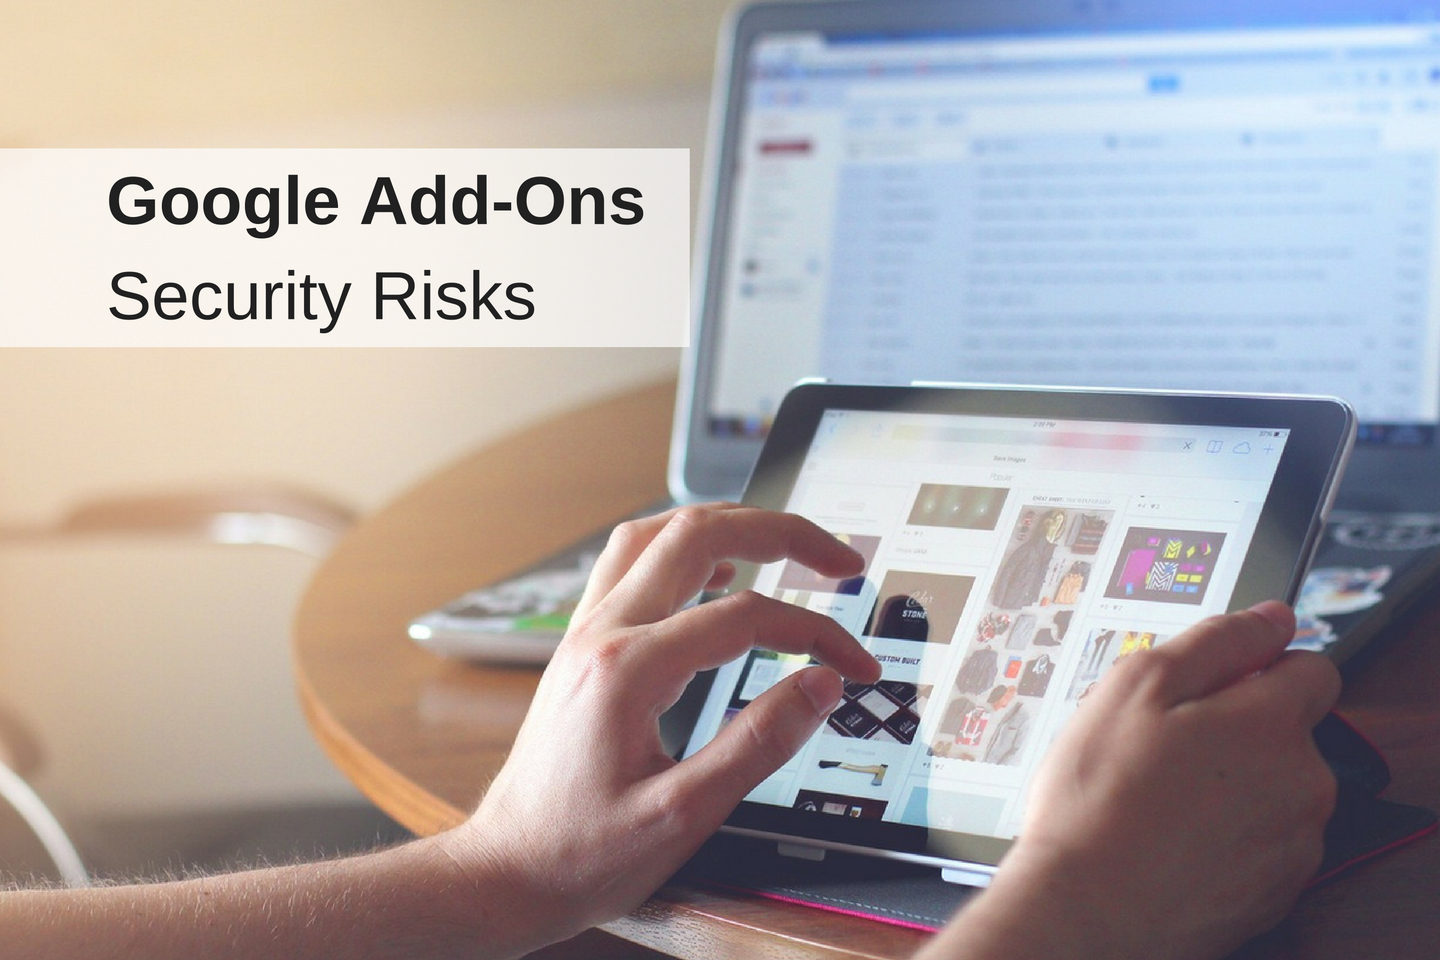 What Are the Security Risks of Using Google Add-Ons